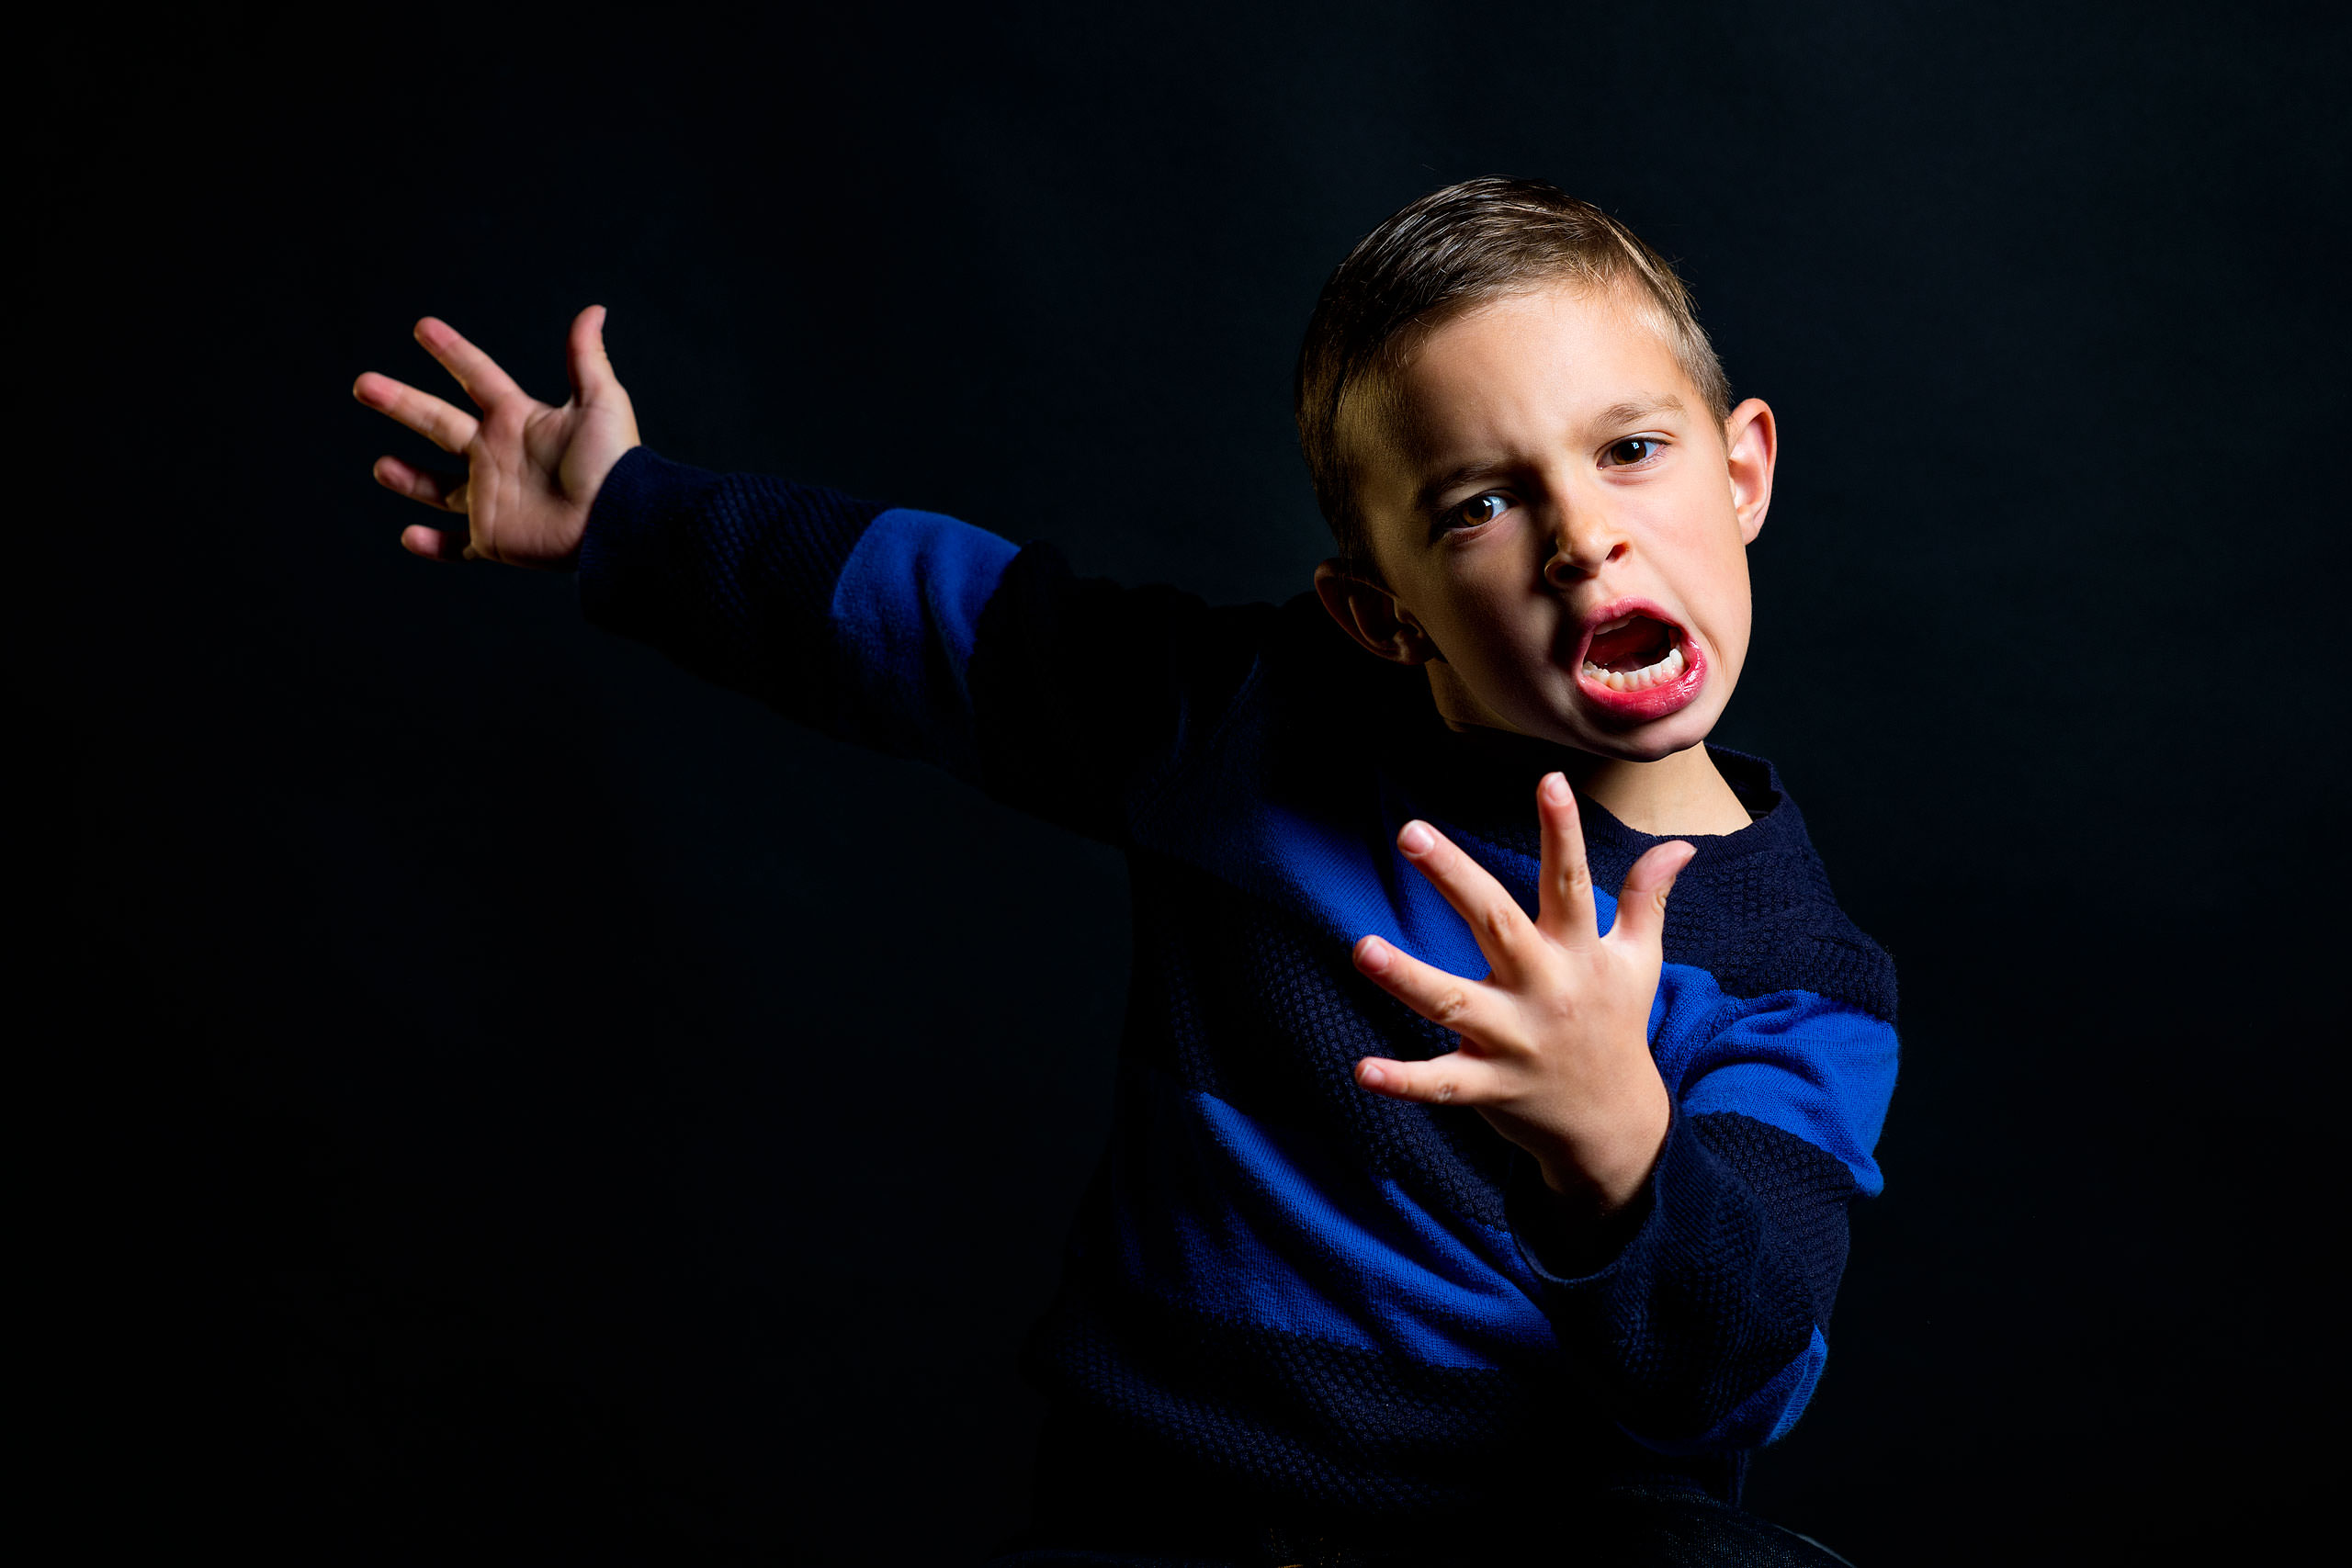 a young boy screaming in a funny manner by top family portrait photographer sean leblanc